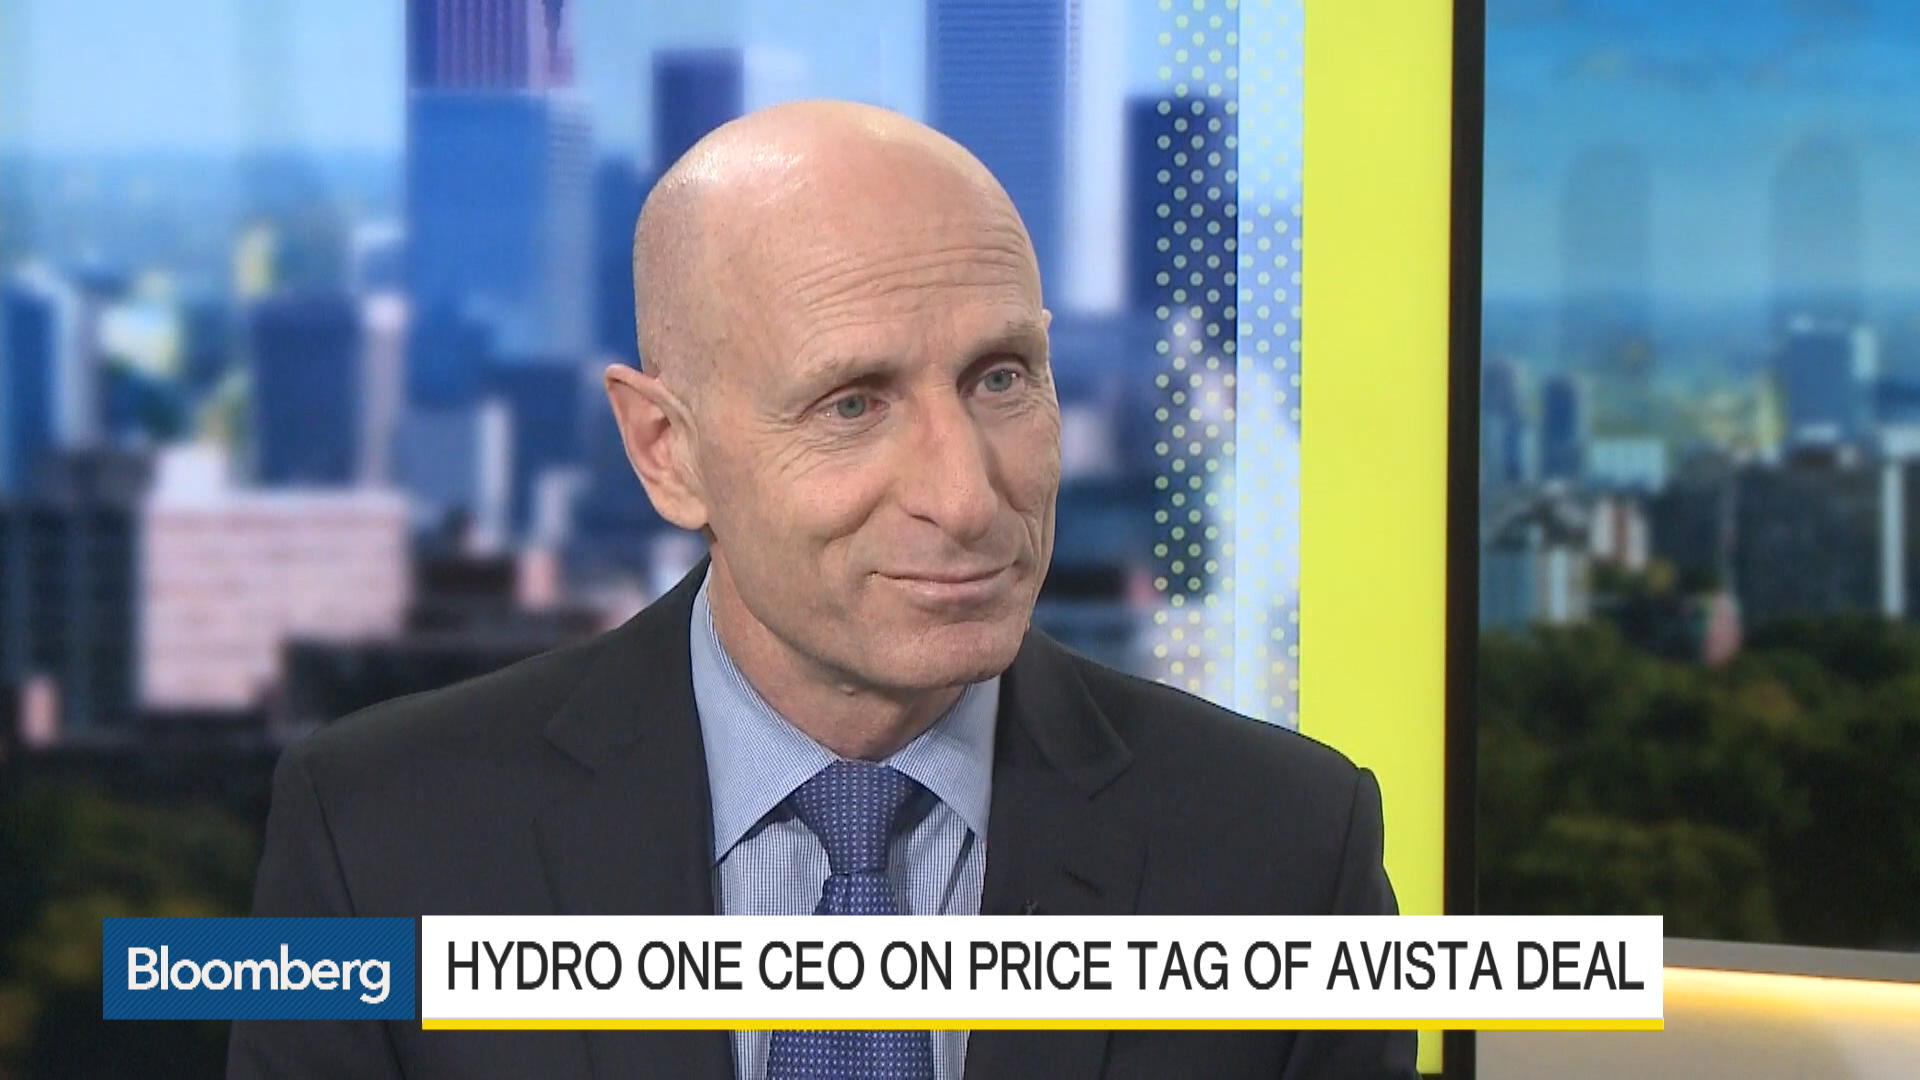 hydro one inc ceo compensation Hydro one has agreed to consult with the province in respect of future matters of executive compensation  inc hydro one limited's common  ceo-300679727html.